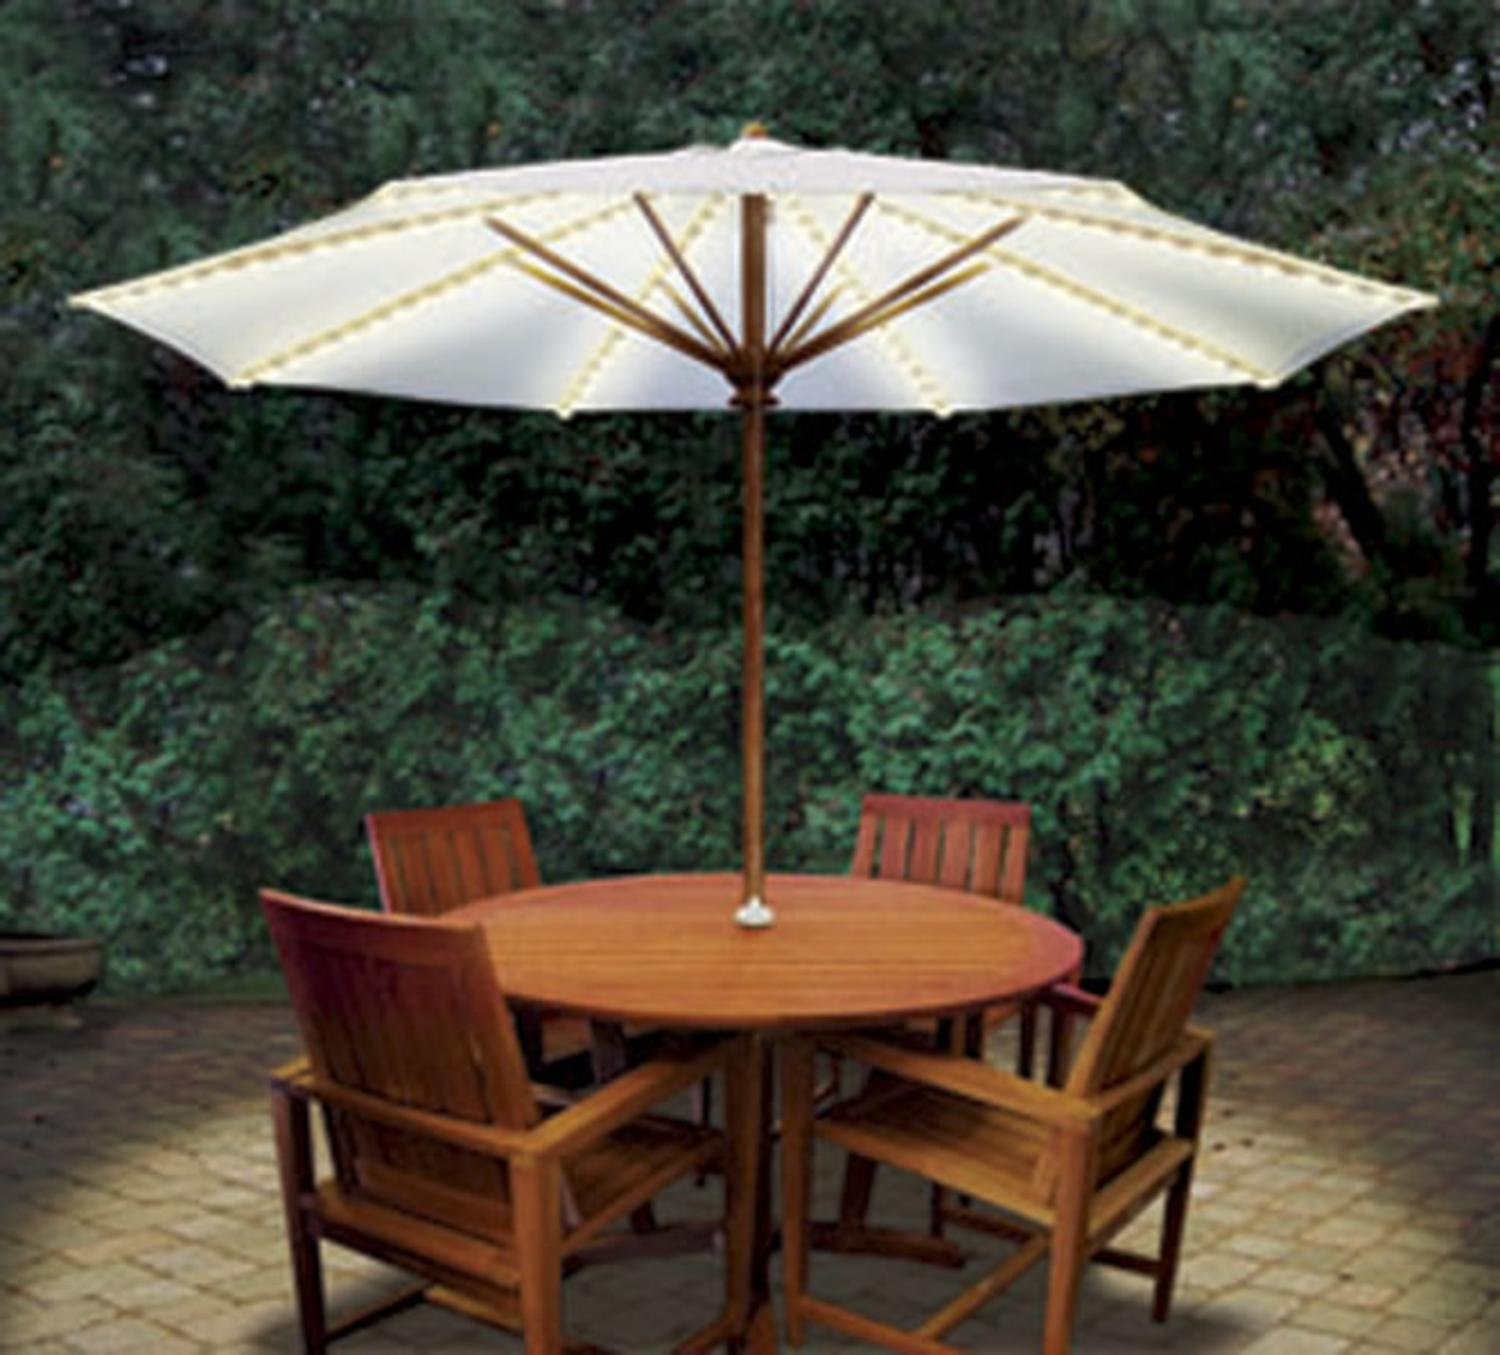 Brella Lights Outdoor Patio Lighting System for 8-Rib Umbrellas - White